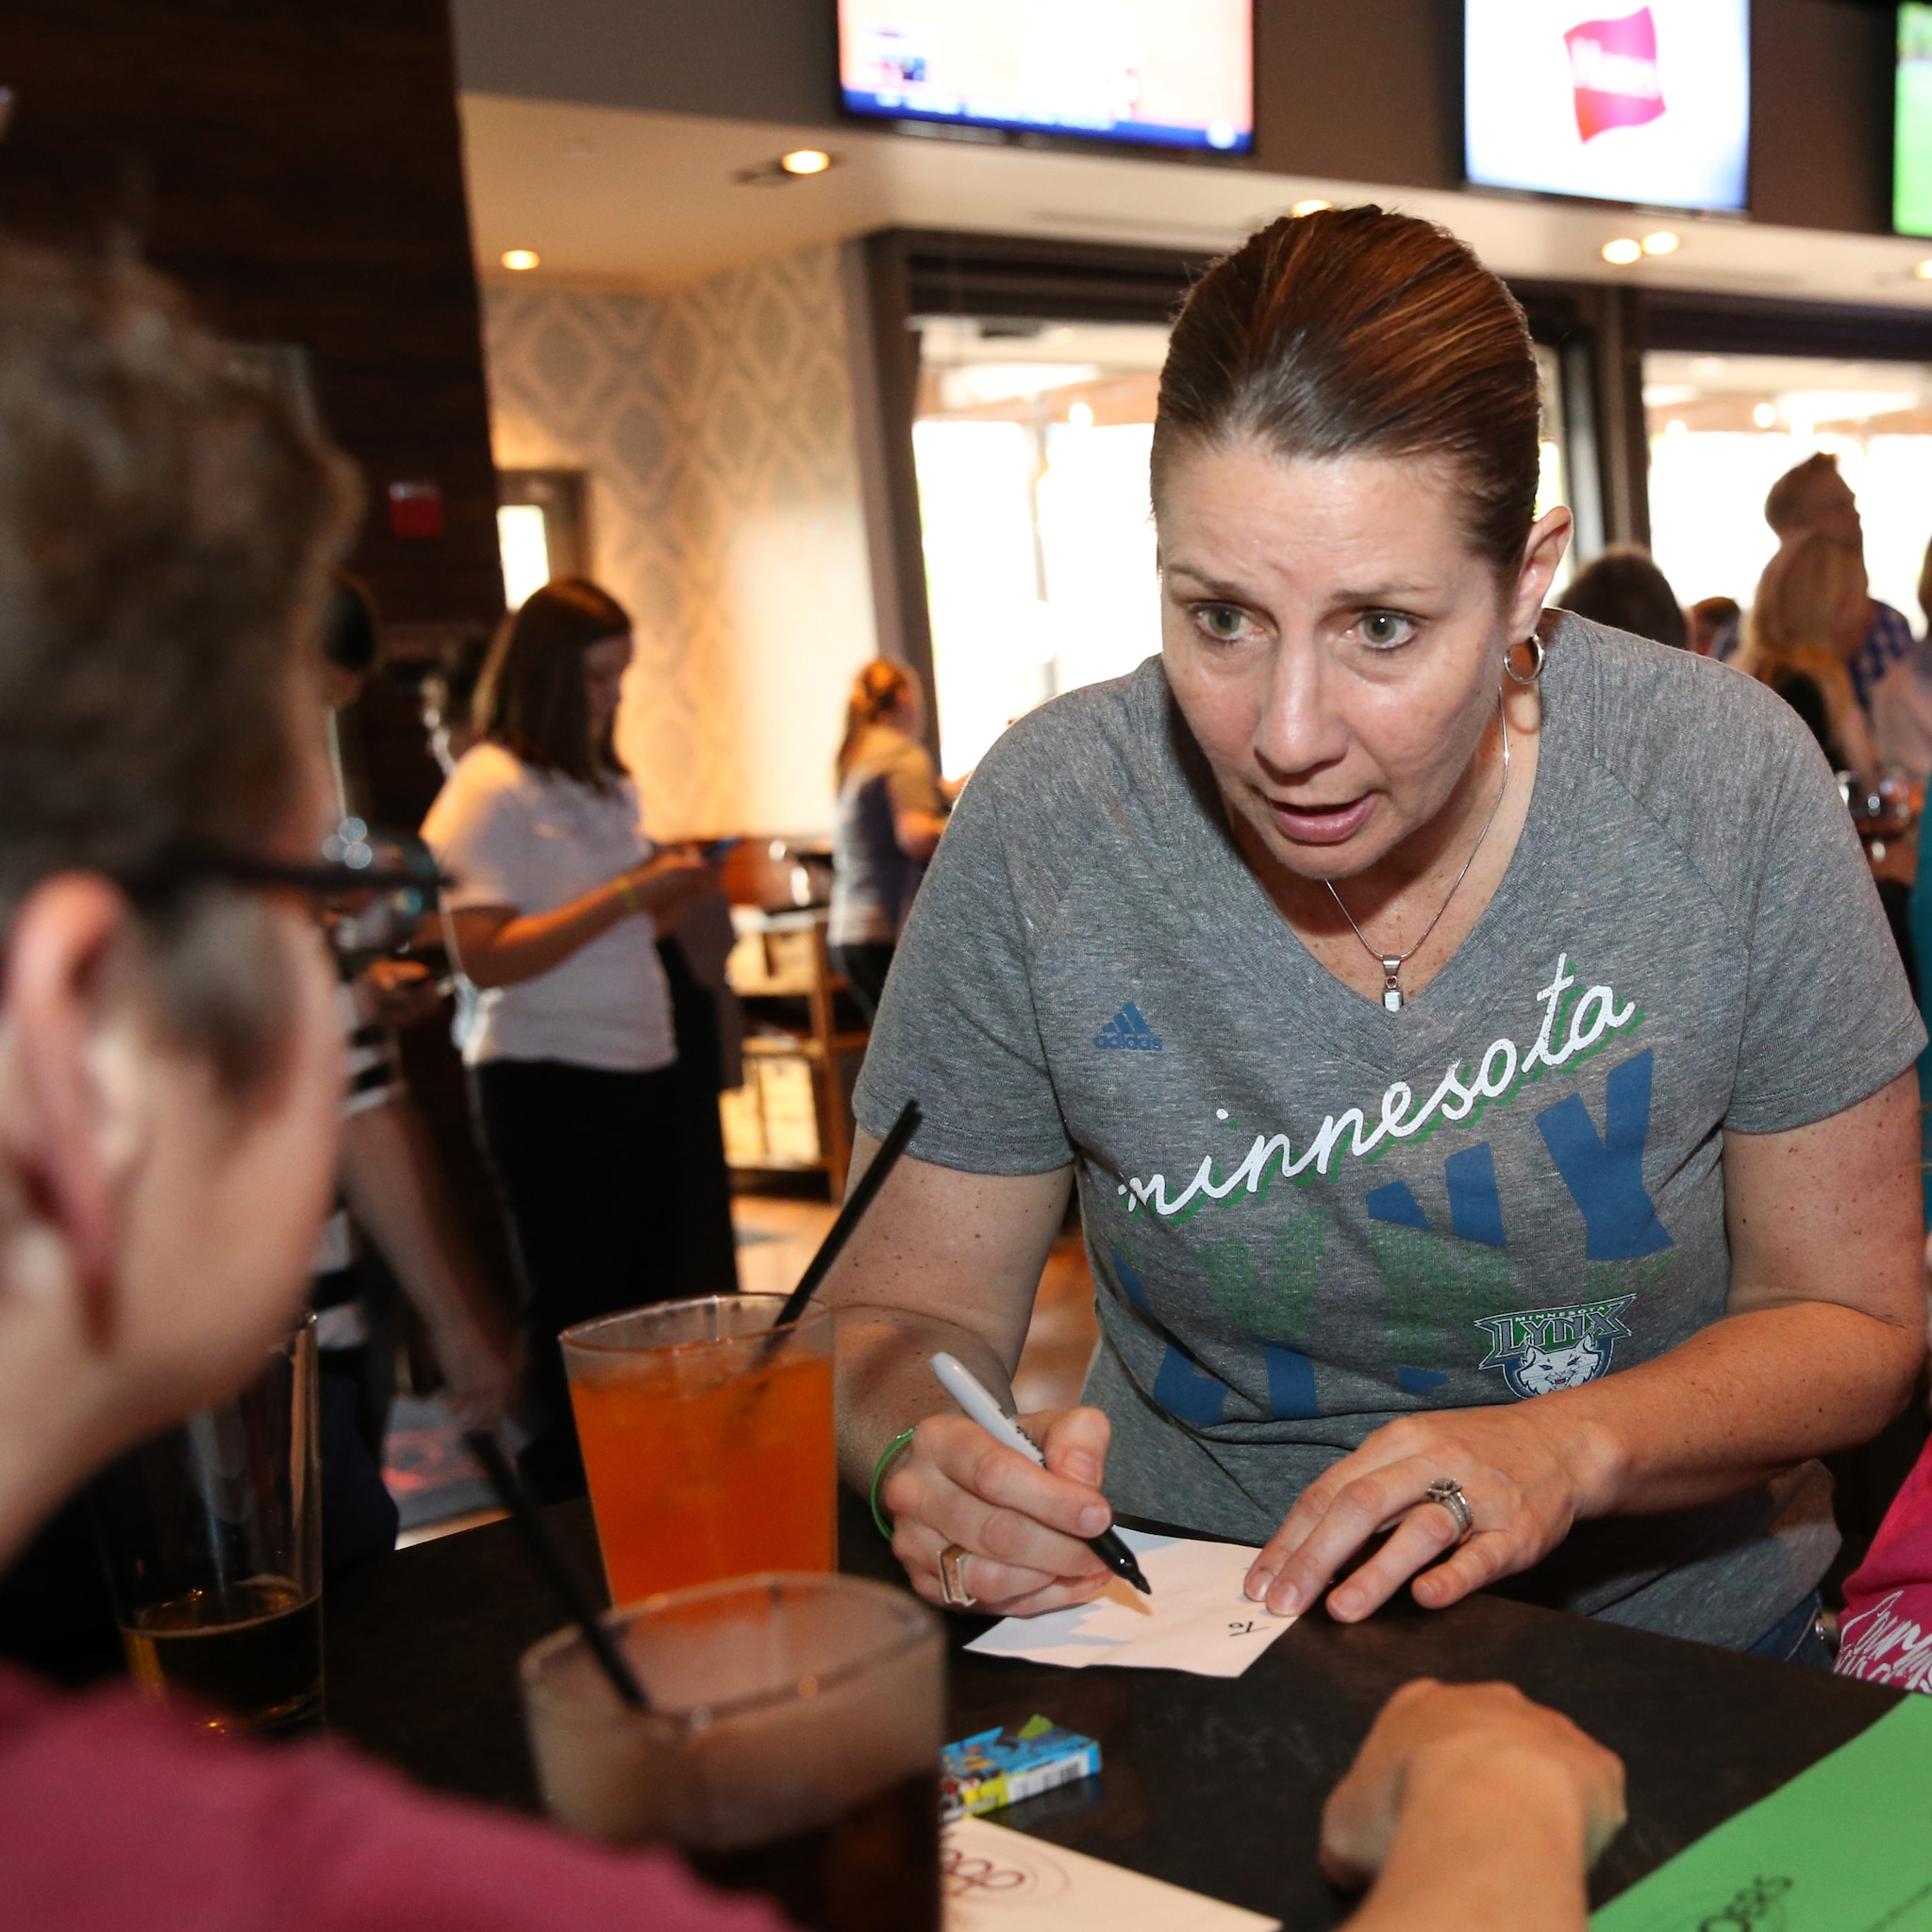 MINNEAPOLIS, MN - JUNE 3:  Cheryl Reeves of the Minnesota Lynx takes food orders during the Tip-A-Lynx fundraiser to benefit the Minnesota Lynx Fastbreak Foundation on June 3, 2015 at the Loop West End Bar & Restaurant in Minneapolis, Minnesota.  NOTE TO USER: User expressly acknowledges and agrees that, by downloading and or using this Photograph, user is consenting to the terms and conditions of the Getty Images License Agreement. Mandatory Copyright Notice: Copyright 2015 NBAE (Photo by David Sherman/NBAE via Getty Images)